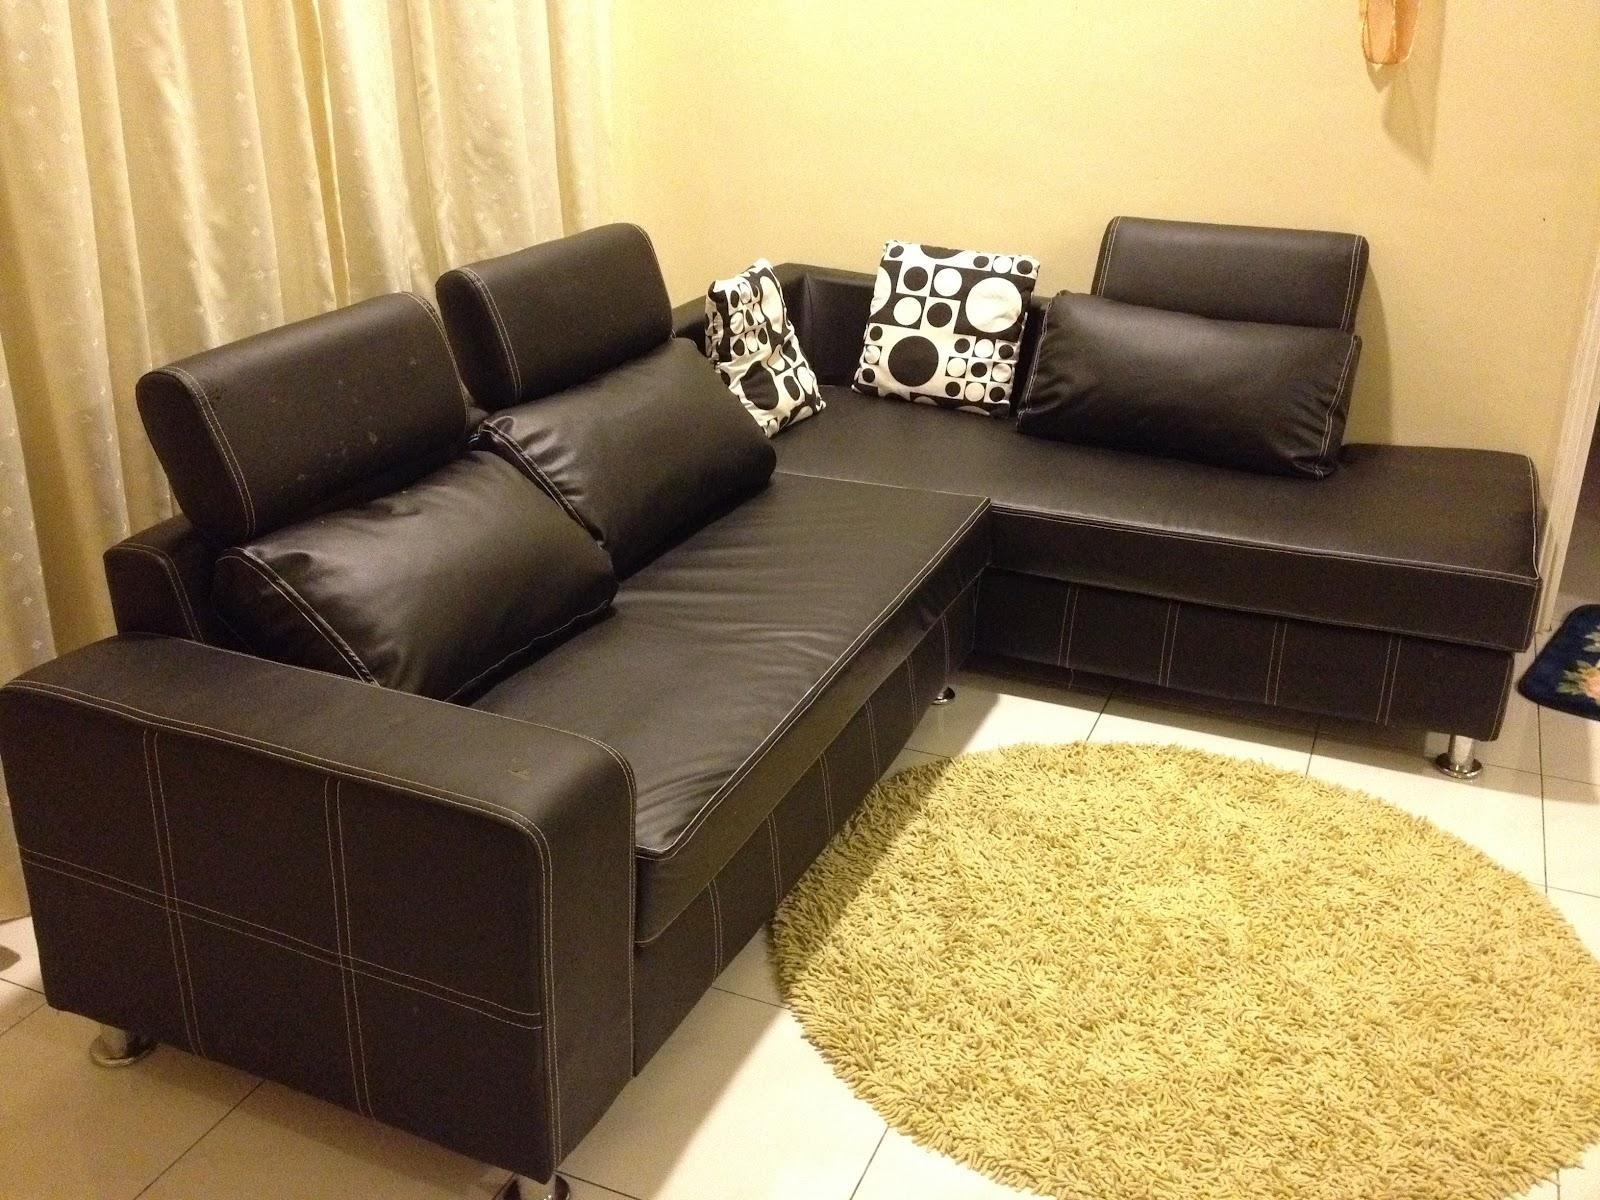 Sectional Sofas For Sale Used | Tehranmix Decoration Pertaining To Used Sectionals (View 5 of 20)